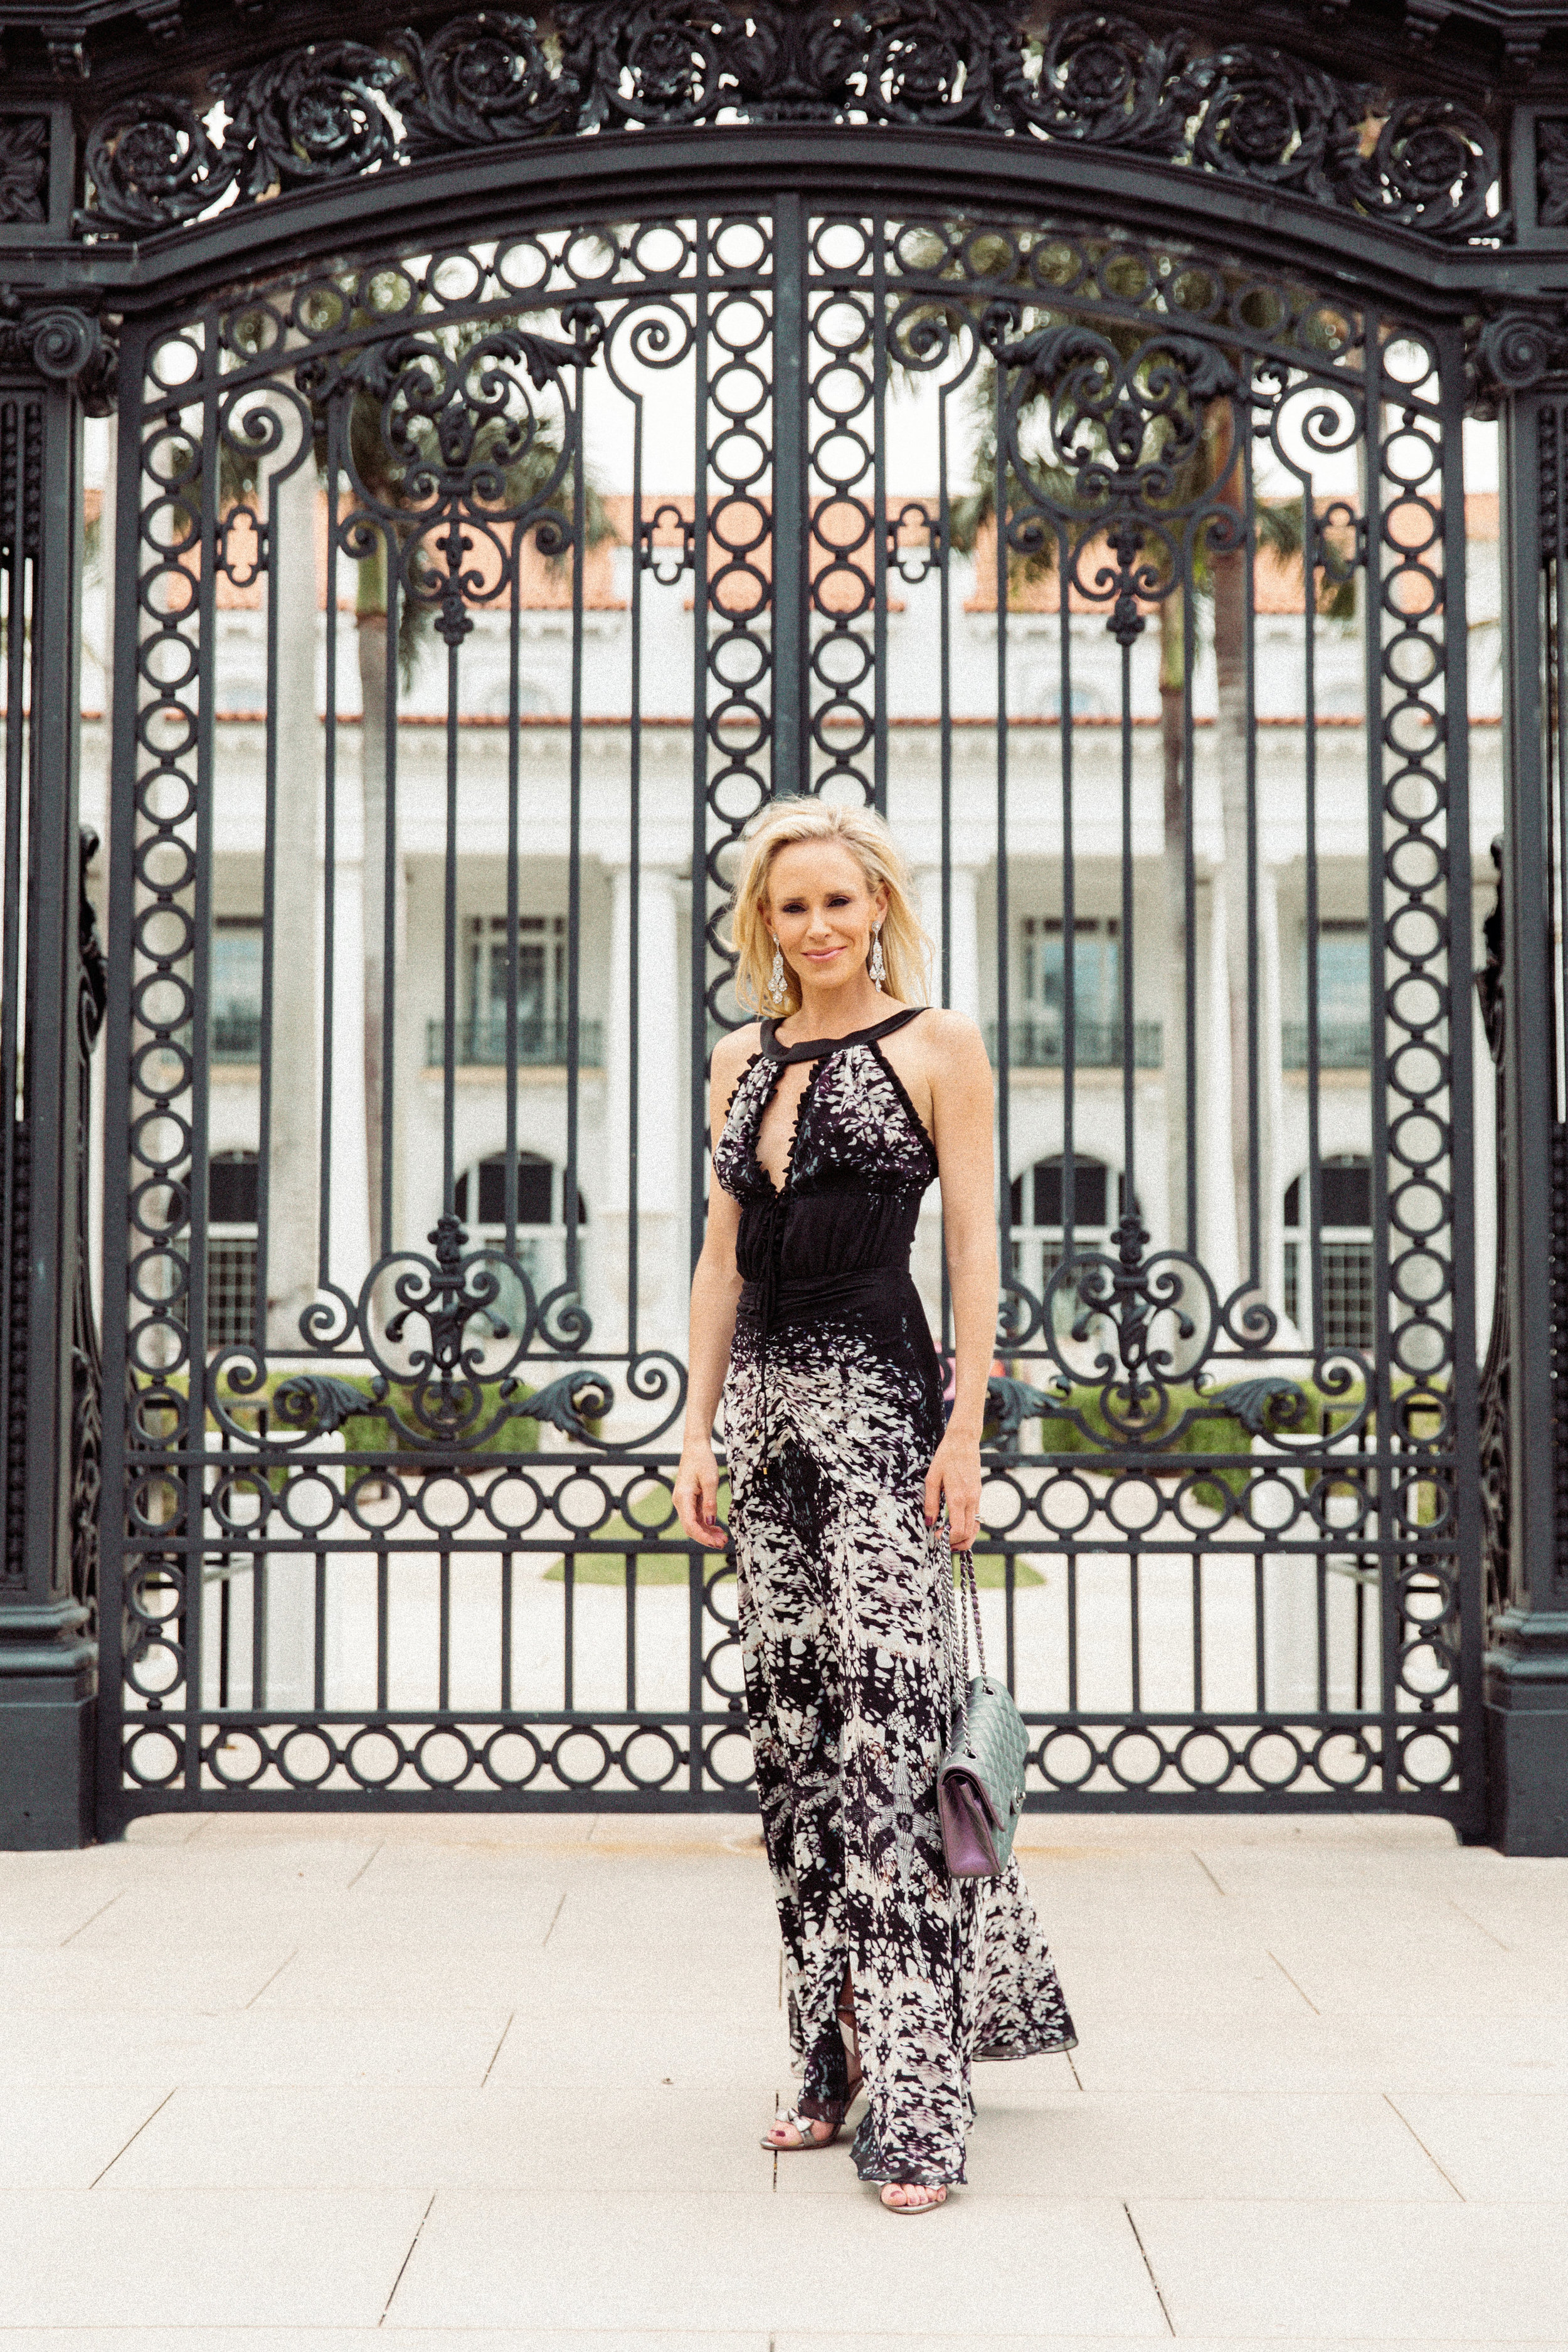 """Find yourself invited to a Gala and don't know what to wear?  The thought of going to a """"fancy"""" event can be intimidating, but the last thing you should be worrying about is whether or not you're dressed appropriately.   In today's blog post I go over how I choose gala outfits that can be appropriate for any setting,  whether I'm at a Black Tie Charity Event or a themed School Fundraiser."""